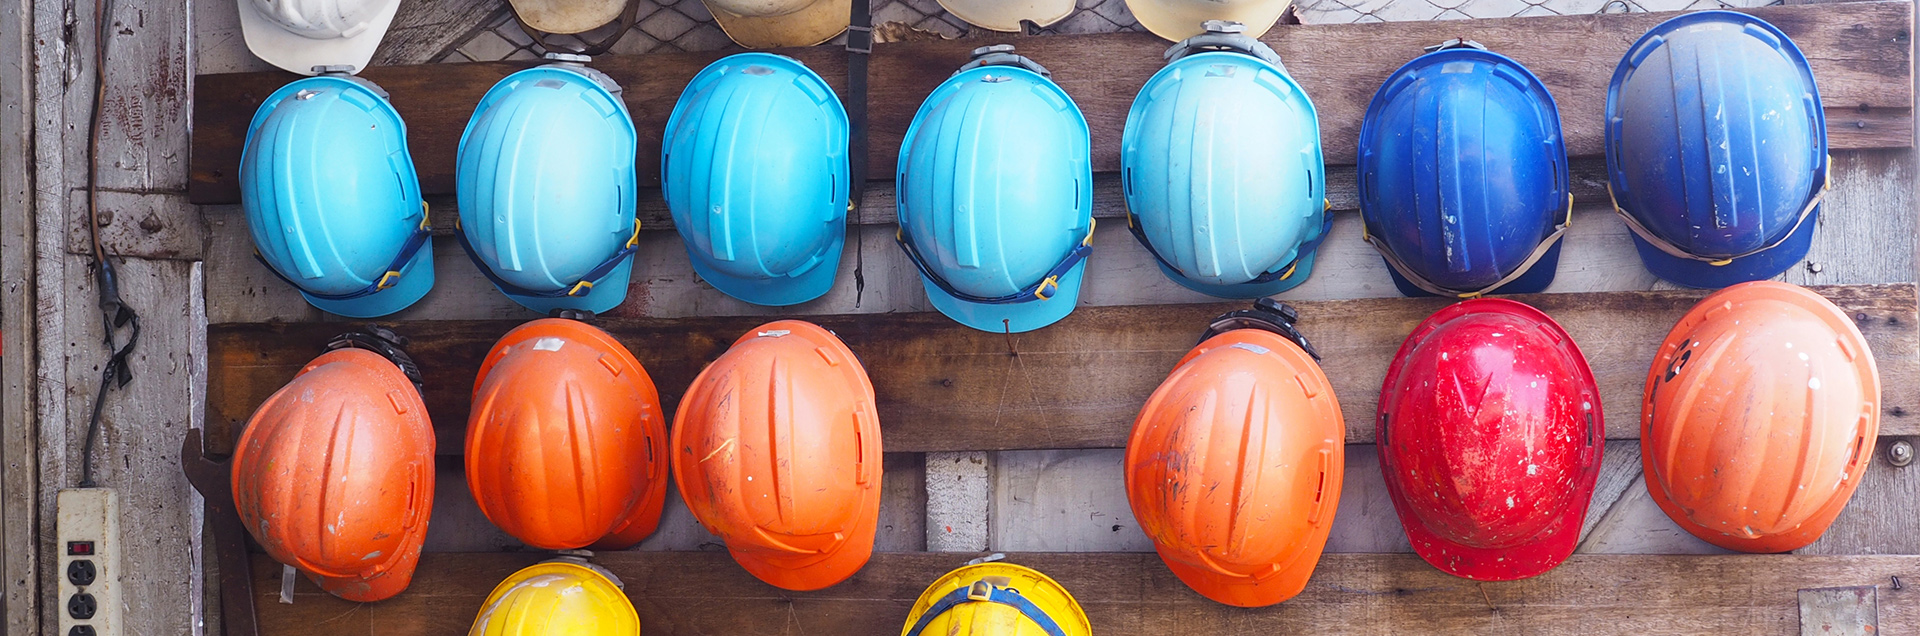 Array of hardhats representing construction workers